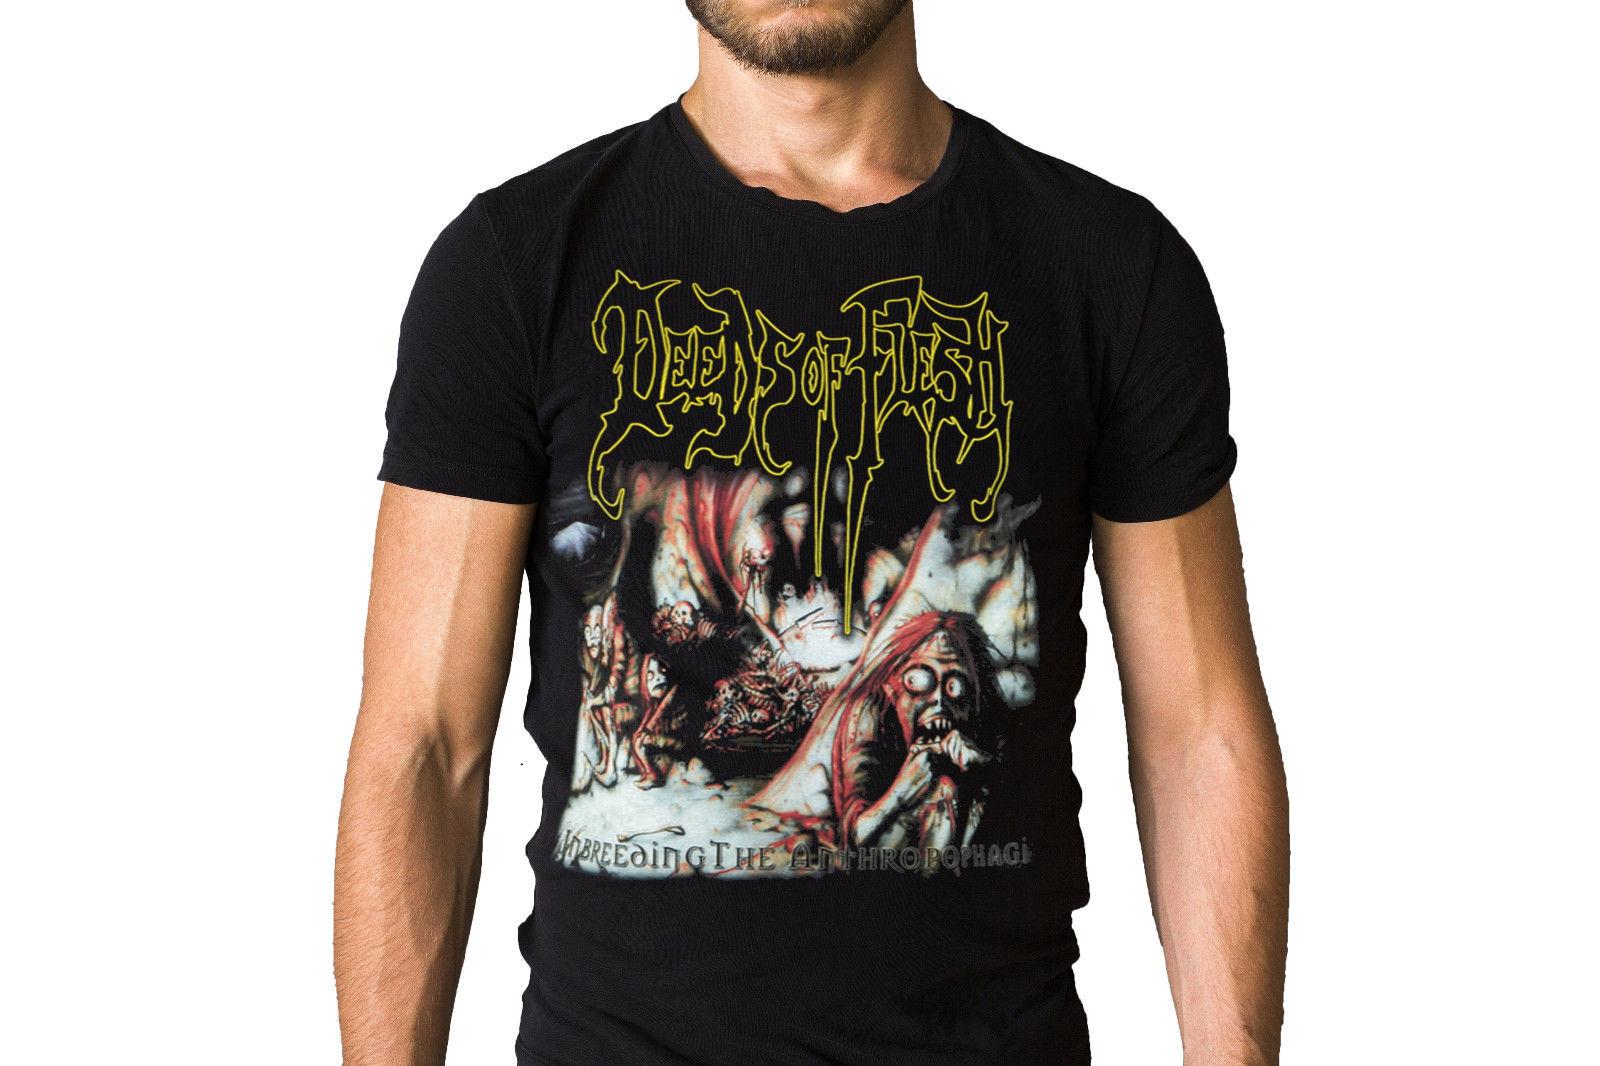 Deeds Of Flesh Inbreeding The Anthropophagi 1998 Album Cover T-Shirt New Brand-Clothing T Shirts top tee